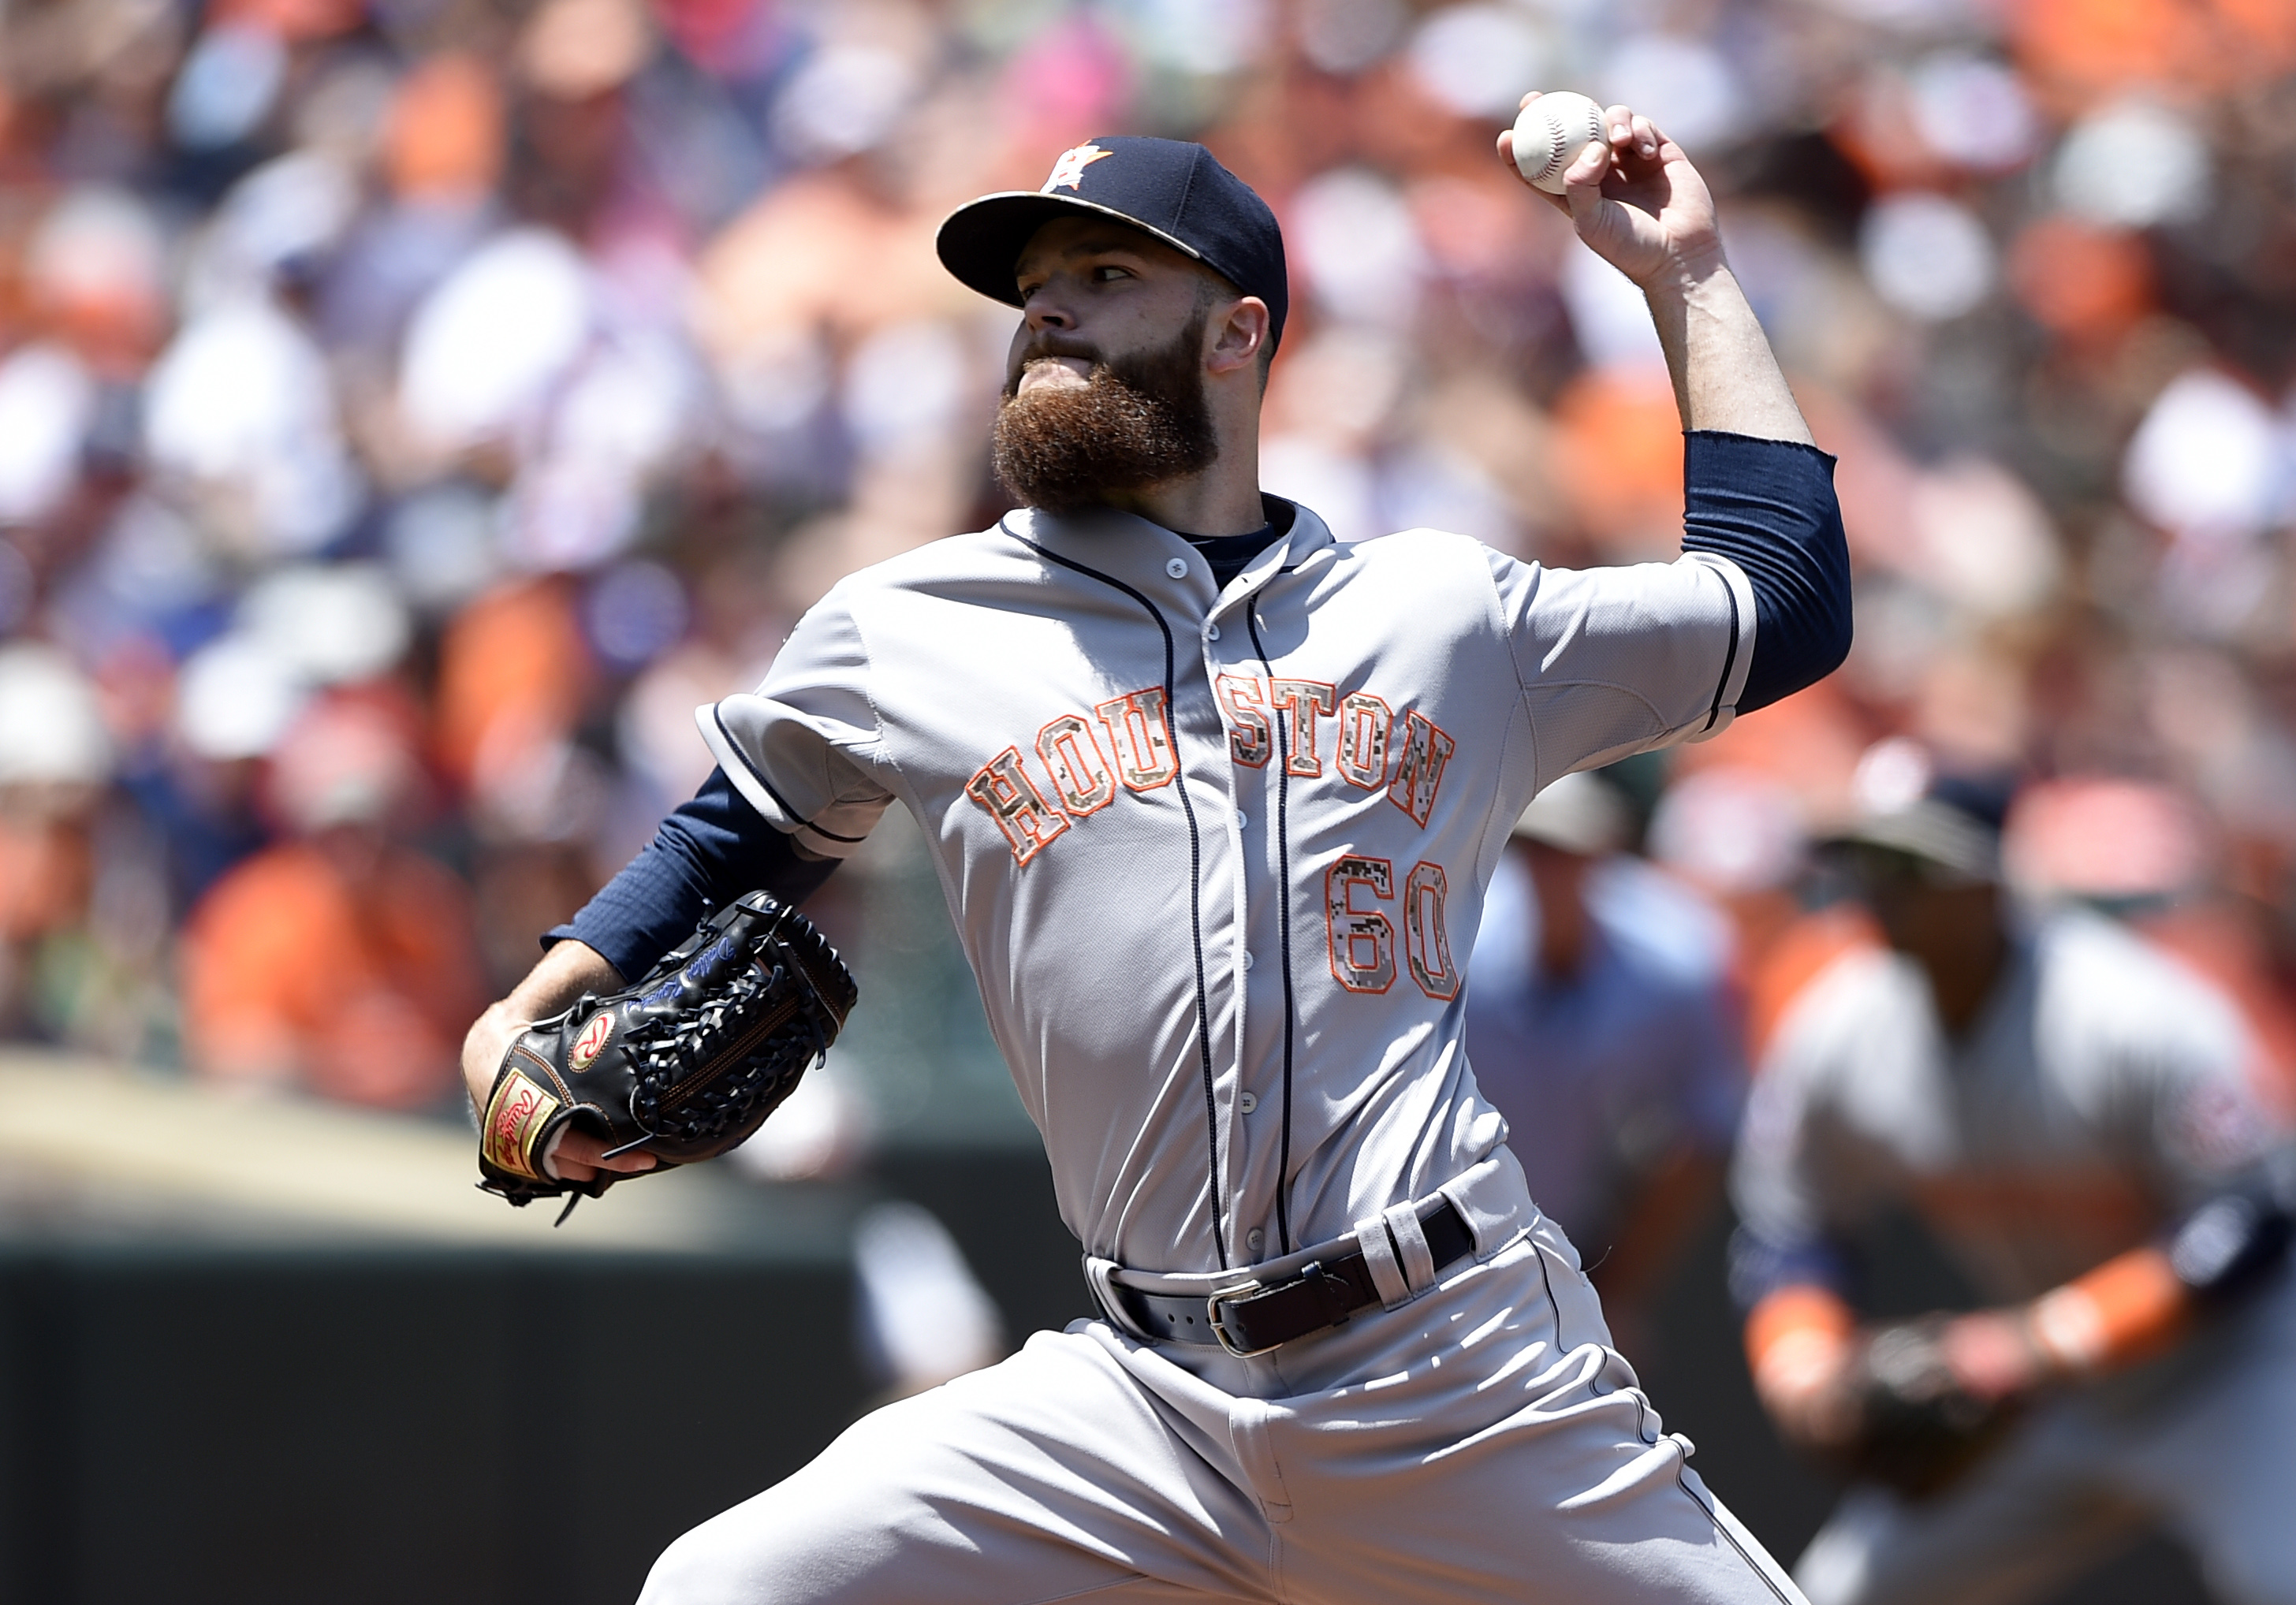 CORRECTS TO FIRST INNING, NOT SECOND AS ORIGINALLY SENT - Houston Astros starting pitcher Dallas Keuchel delivers a pitch against the Baltimore Orioles during the first inning of a baseball game, Monday, May 25, 2015, in Baltimore. (AP Photo/Nick Wass)